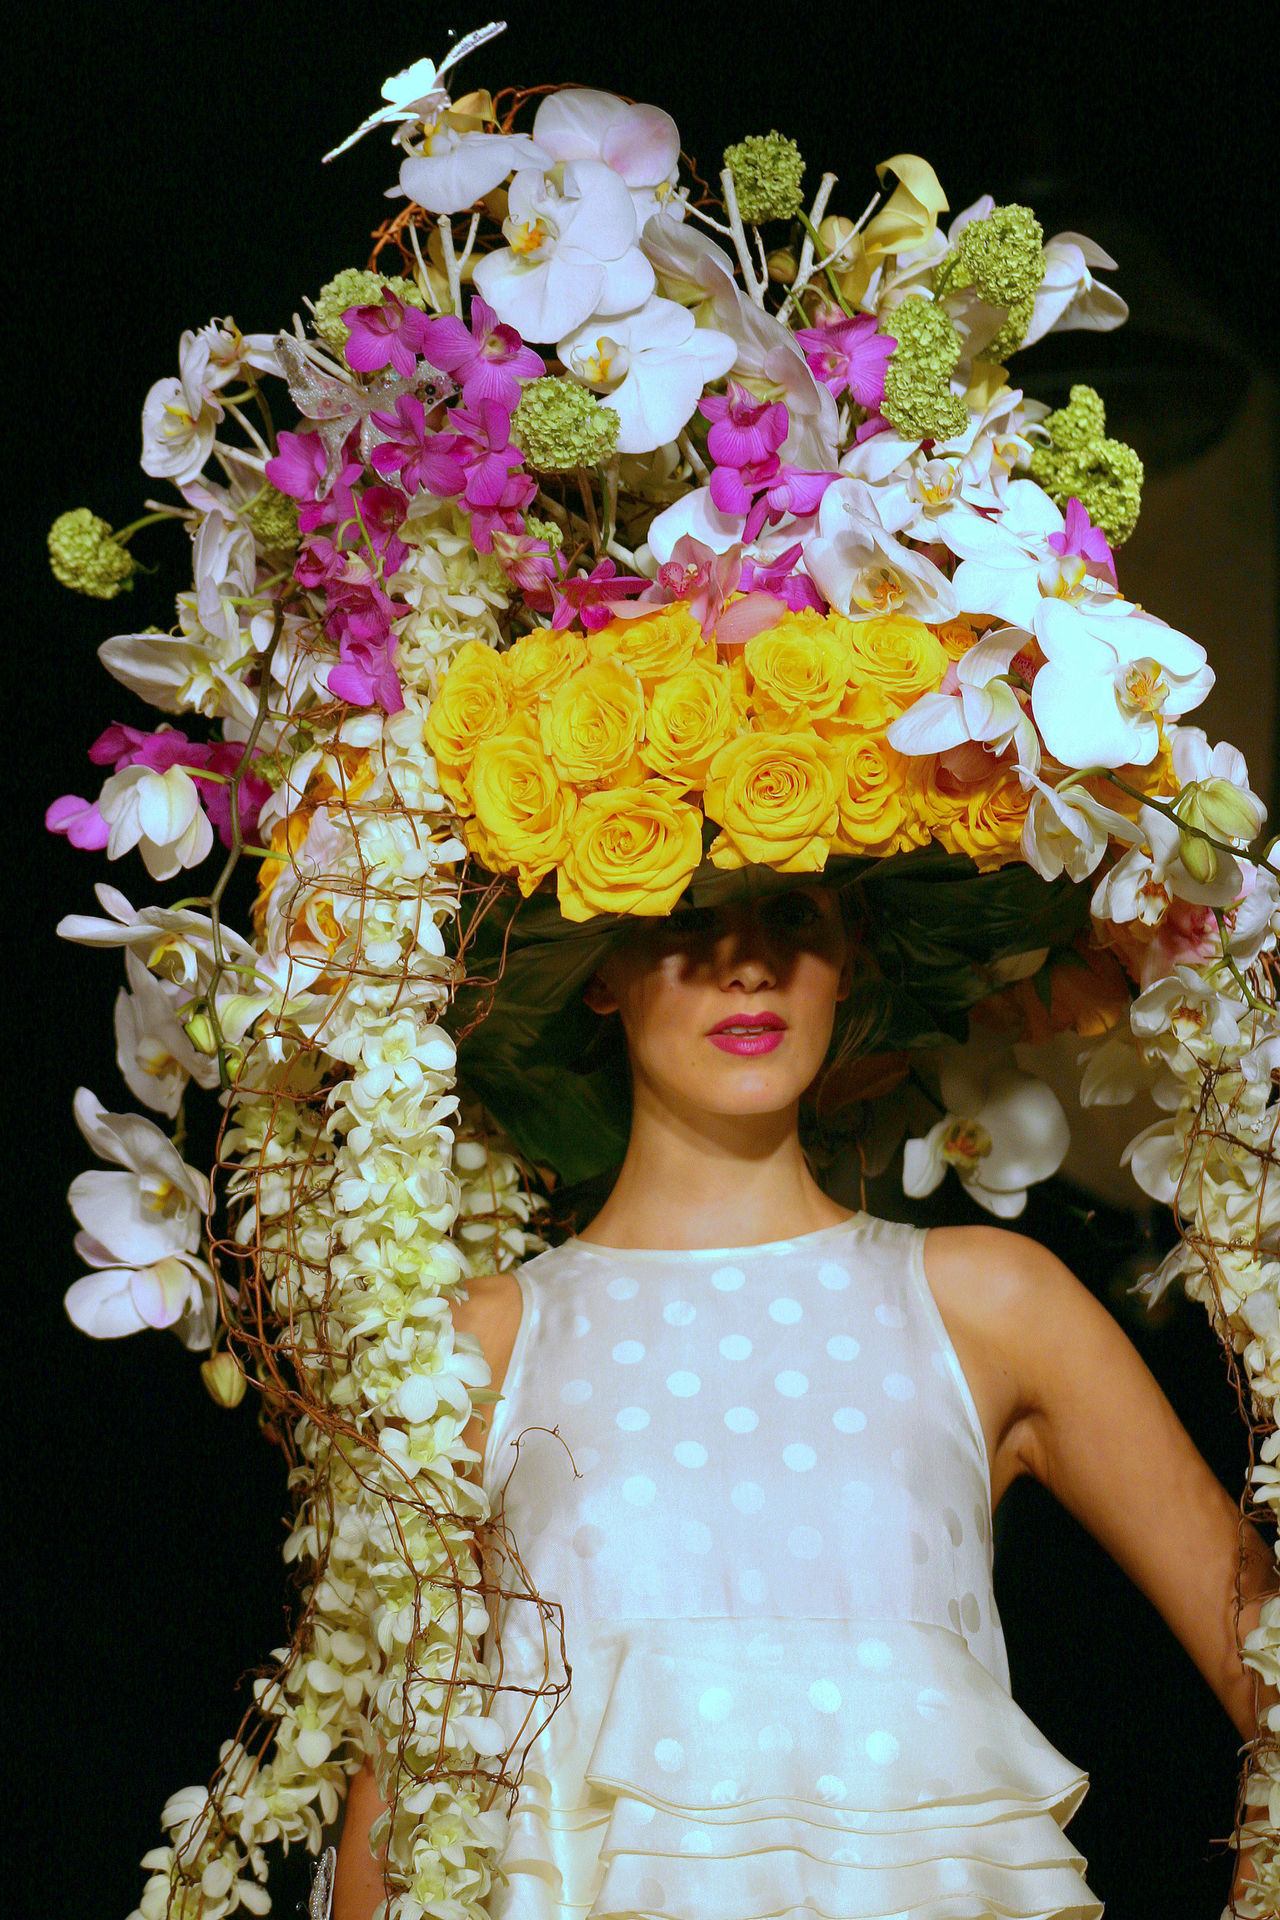 Bouquet Flower Front View Hat Hat Fashion Hat Flowers Model Modeling Portrait Runway Model Runwayfashion